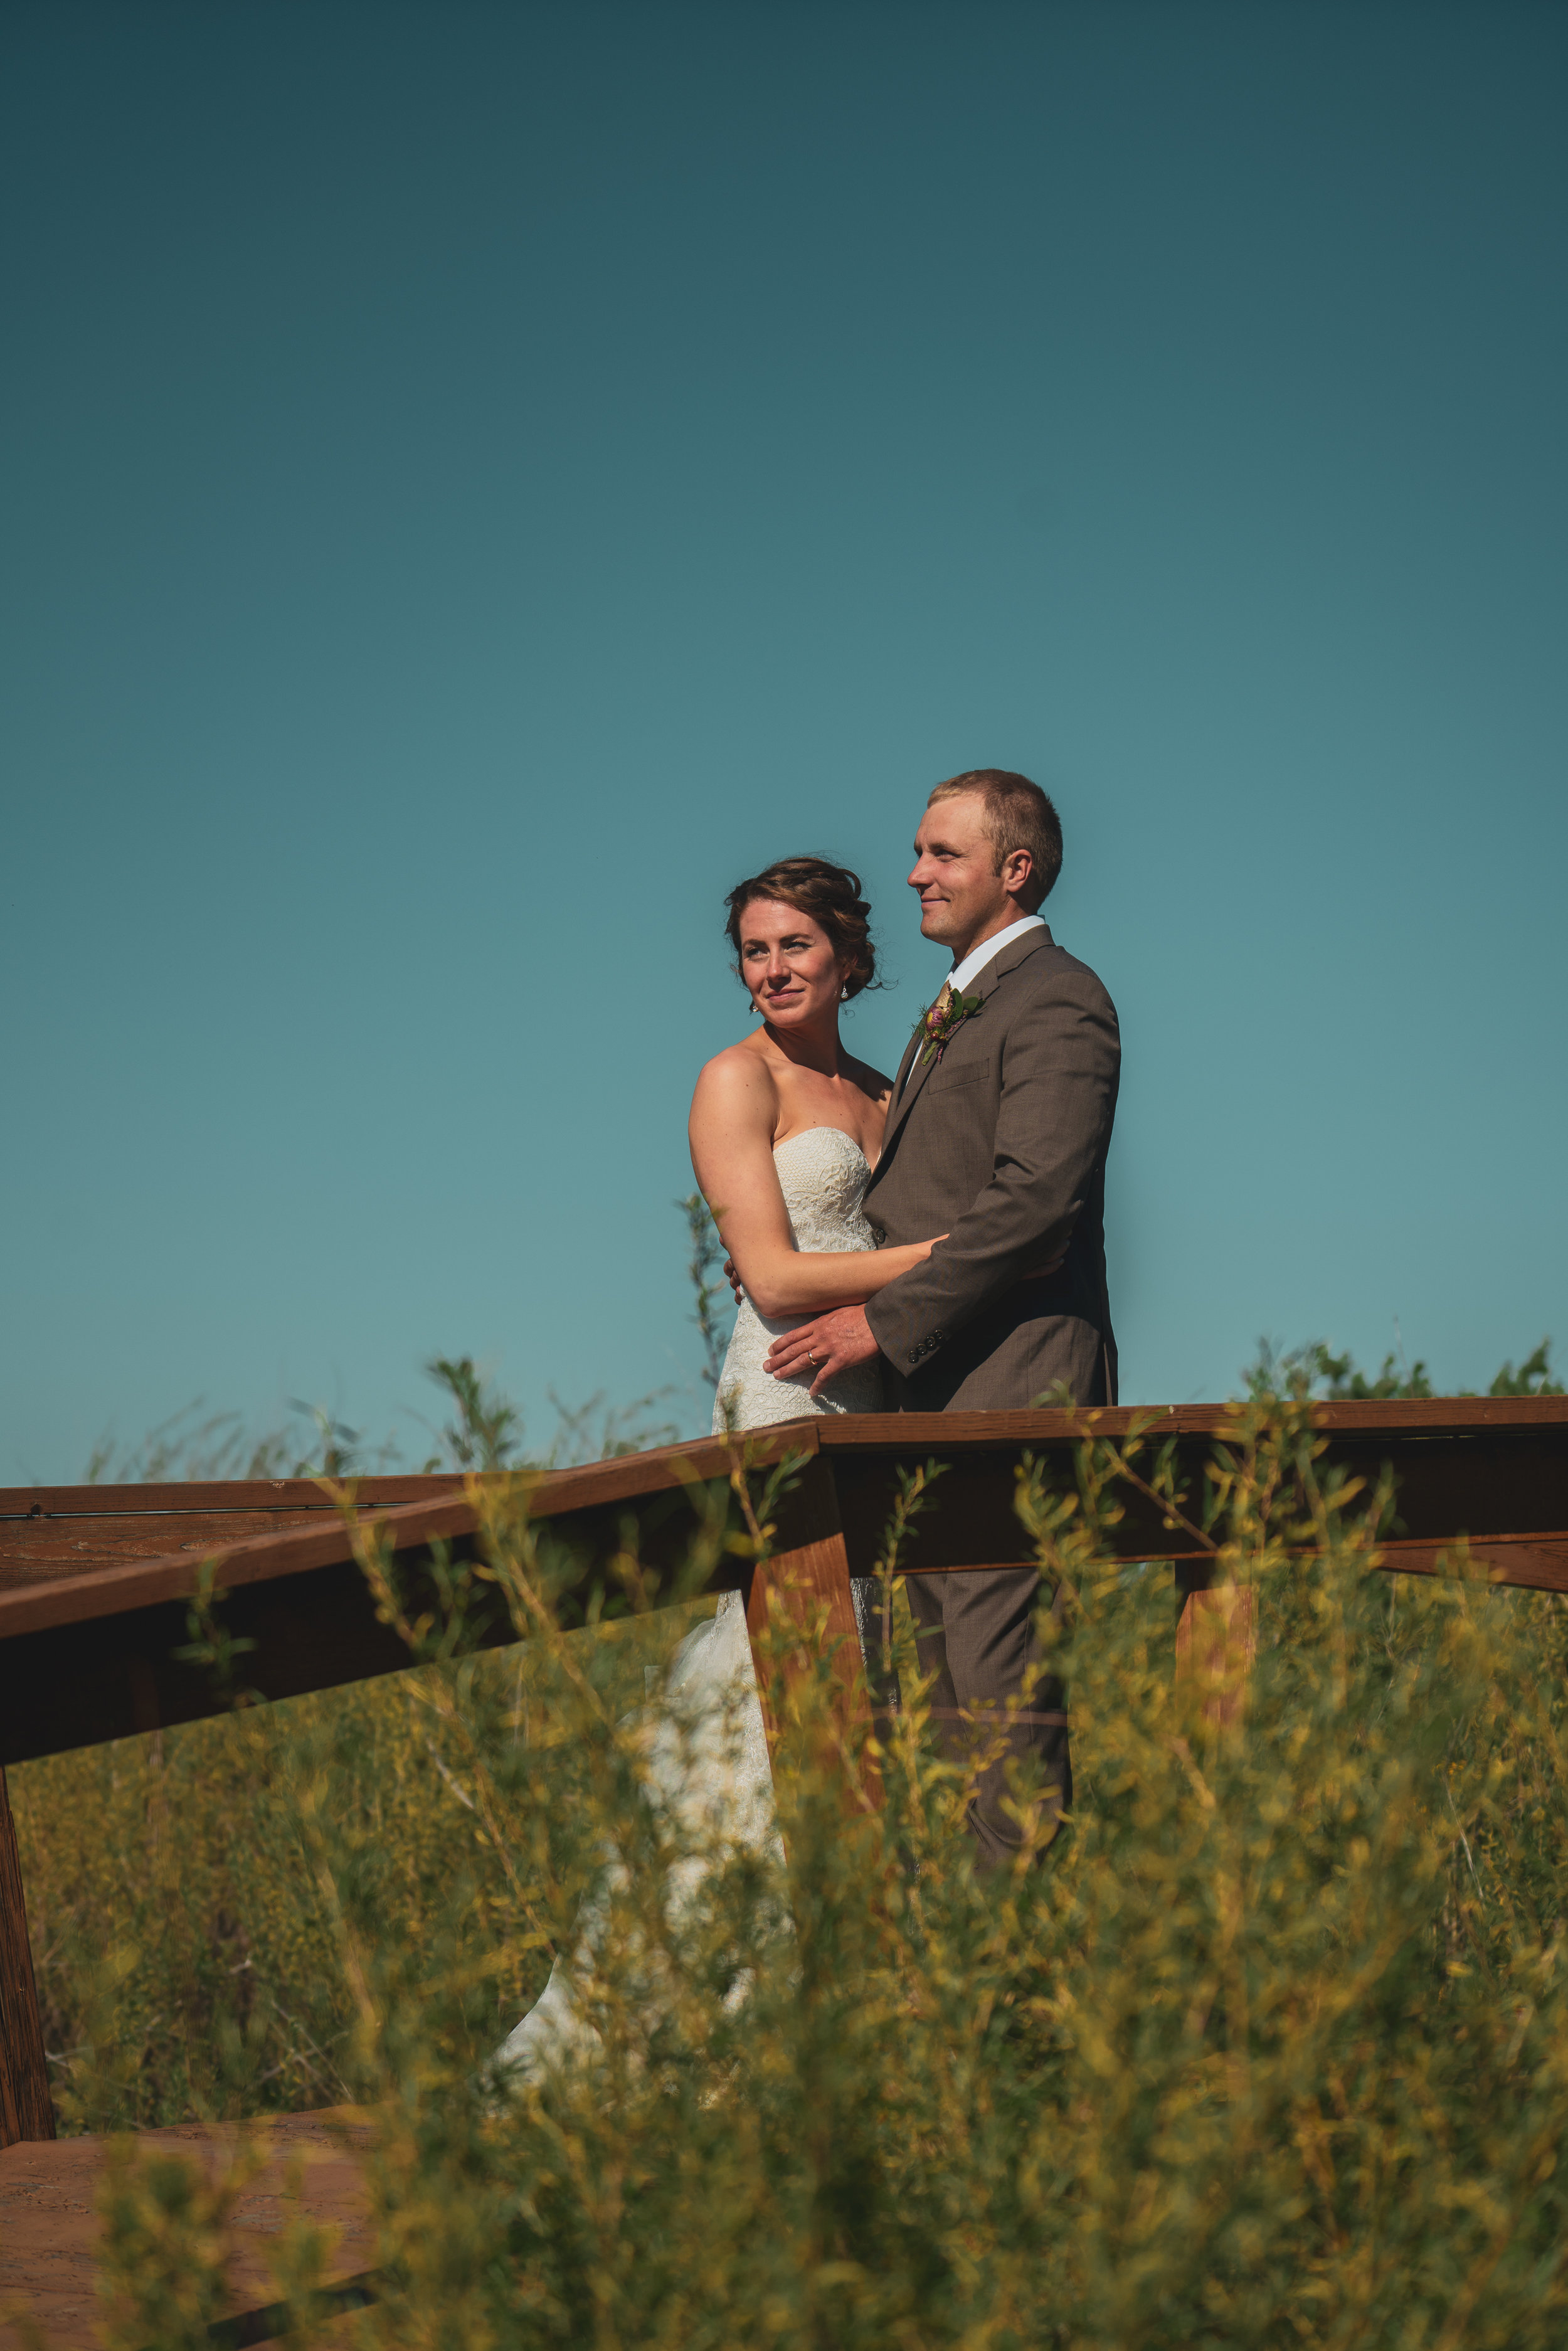 The bride and groom after their wedding in Lewistown, Montana